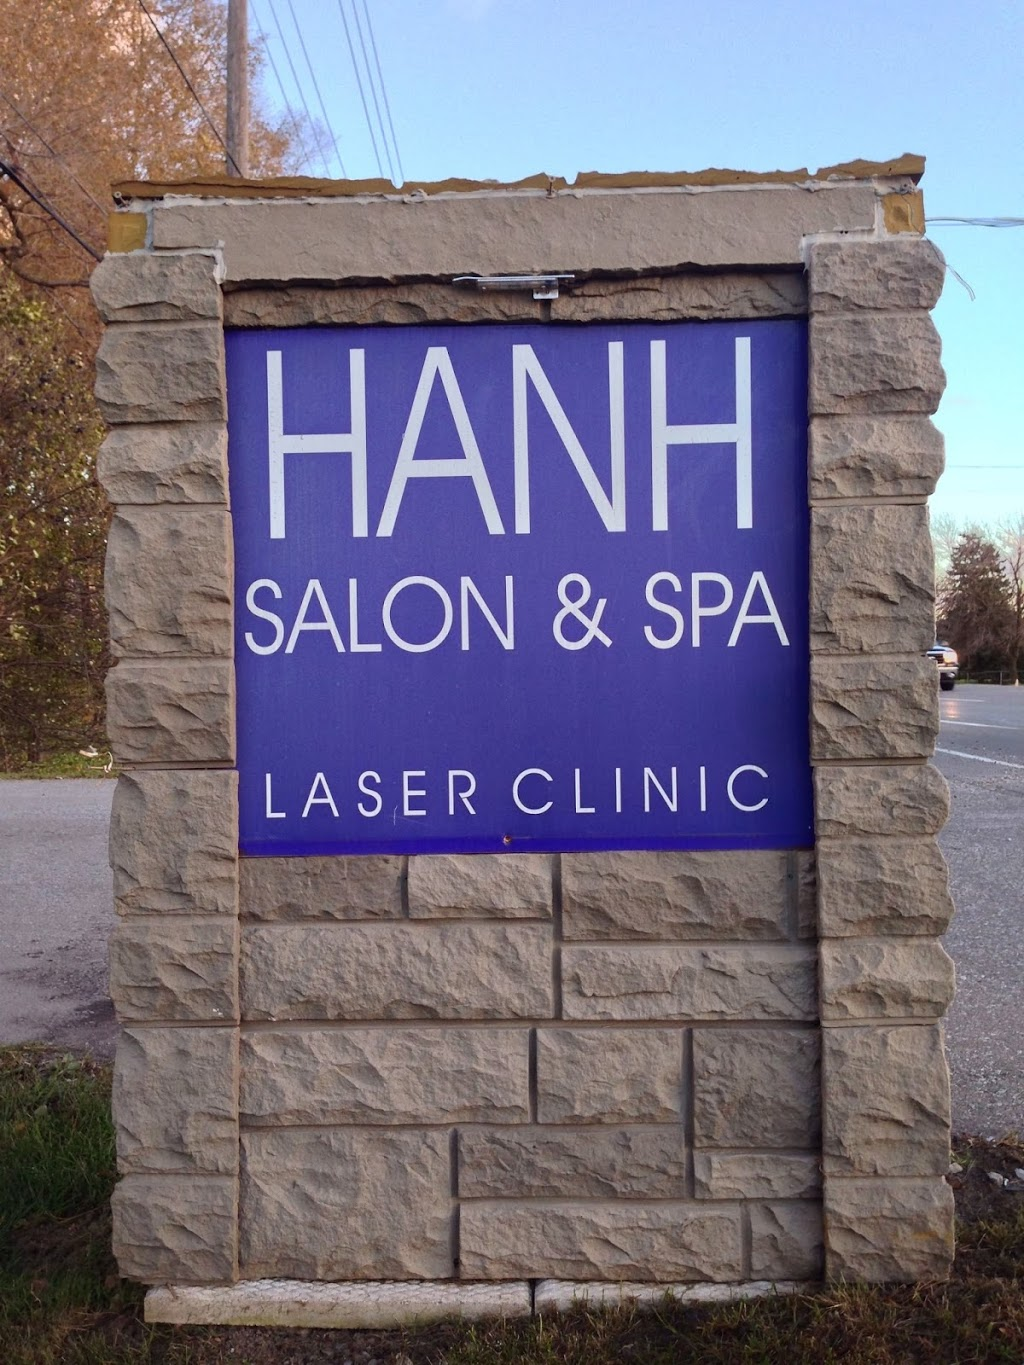 Hanh Salon & Spa (Mayfield Location) | hair care | 11495 Hurontario St, Brampton, ON L6Z 0B1, Canada | 9054520855 OR +1 905-452-0855